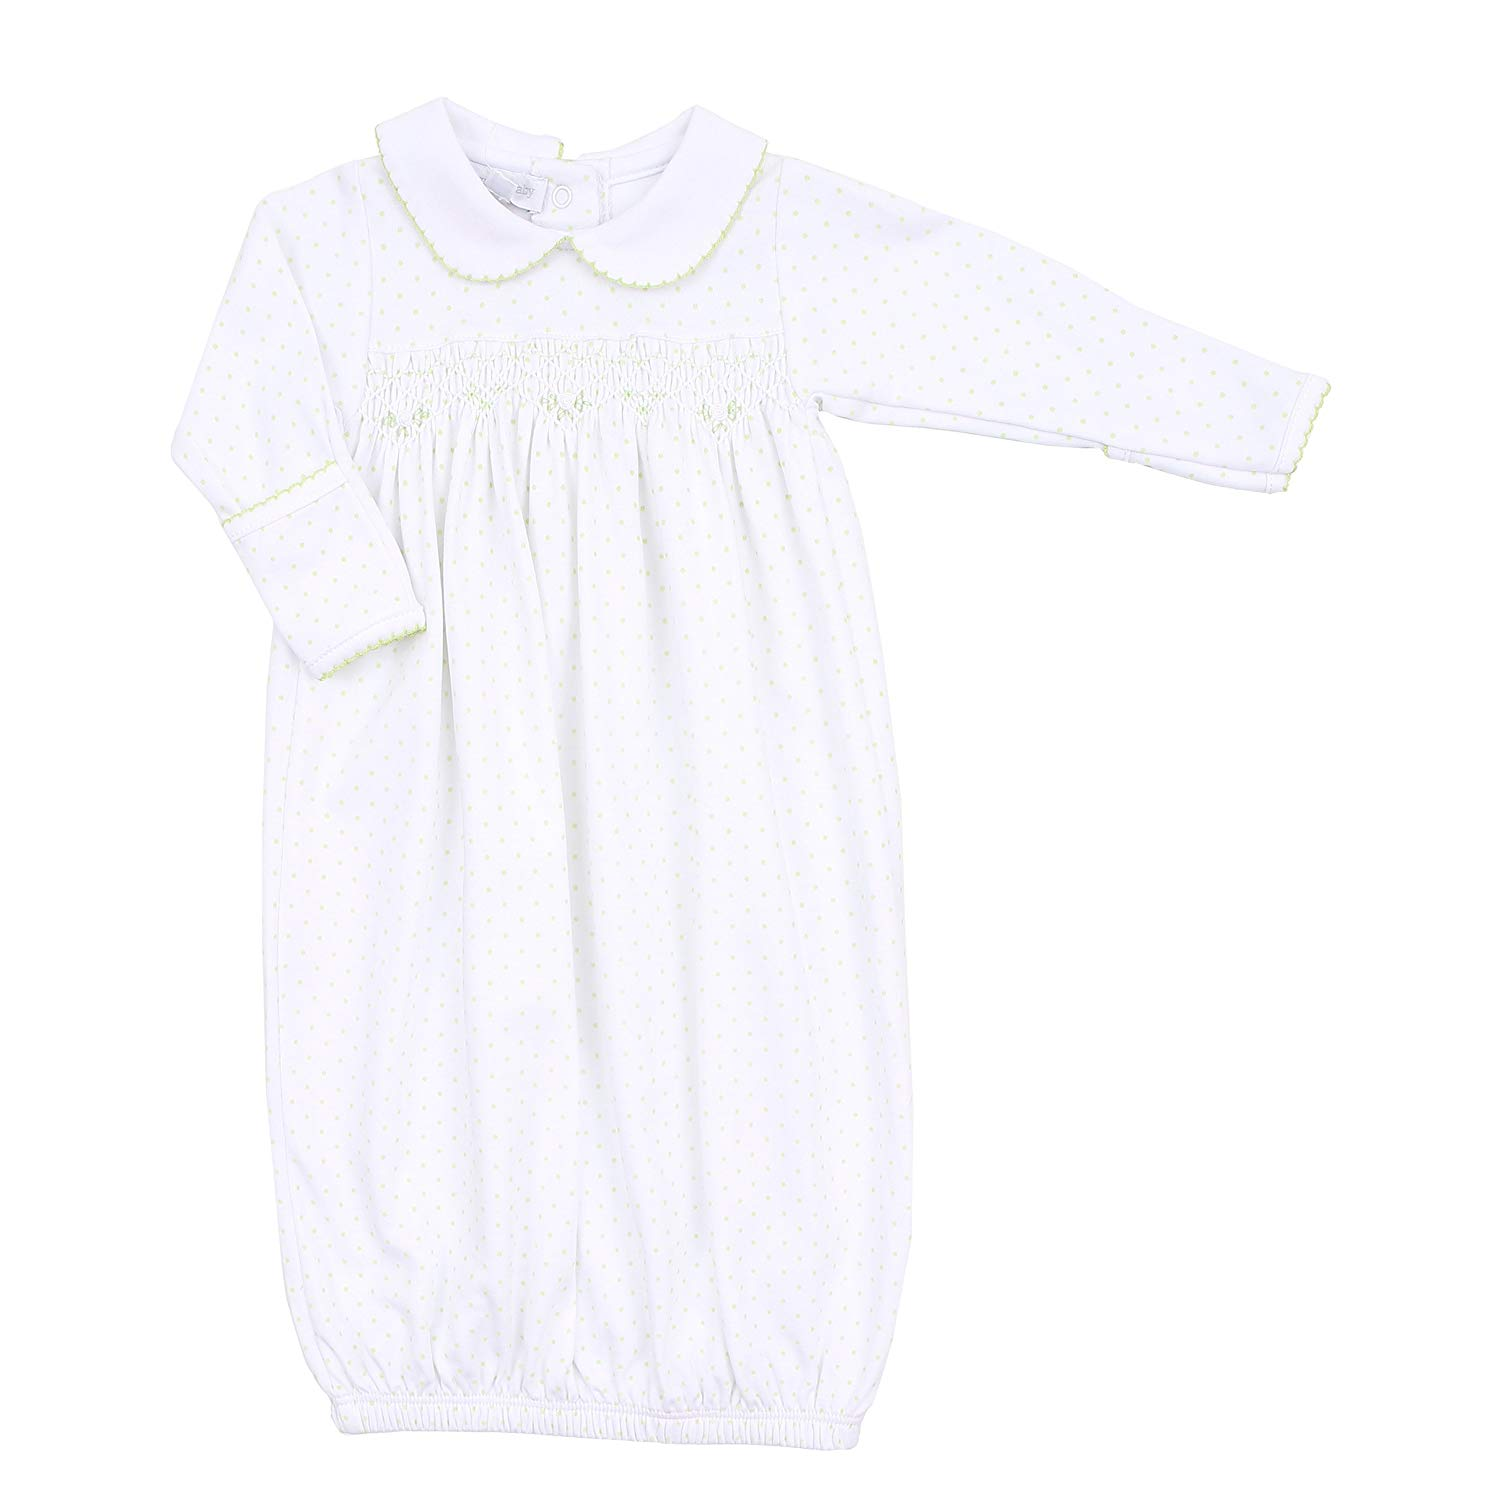 fa01b1ad0f94 Get Quotations · Magnolia Baby Unisex Baby Isabella s Classics Collared  Smocked Gown White Newborn